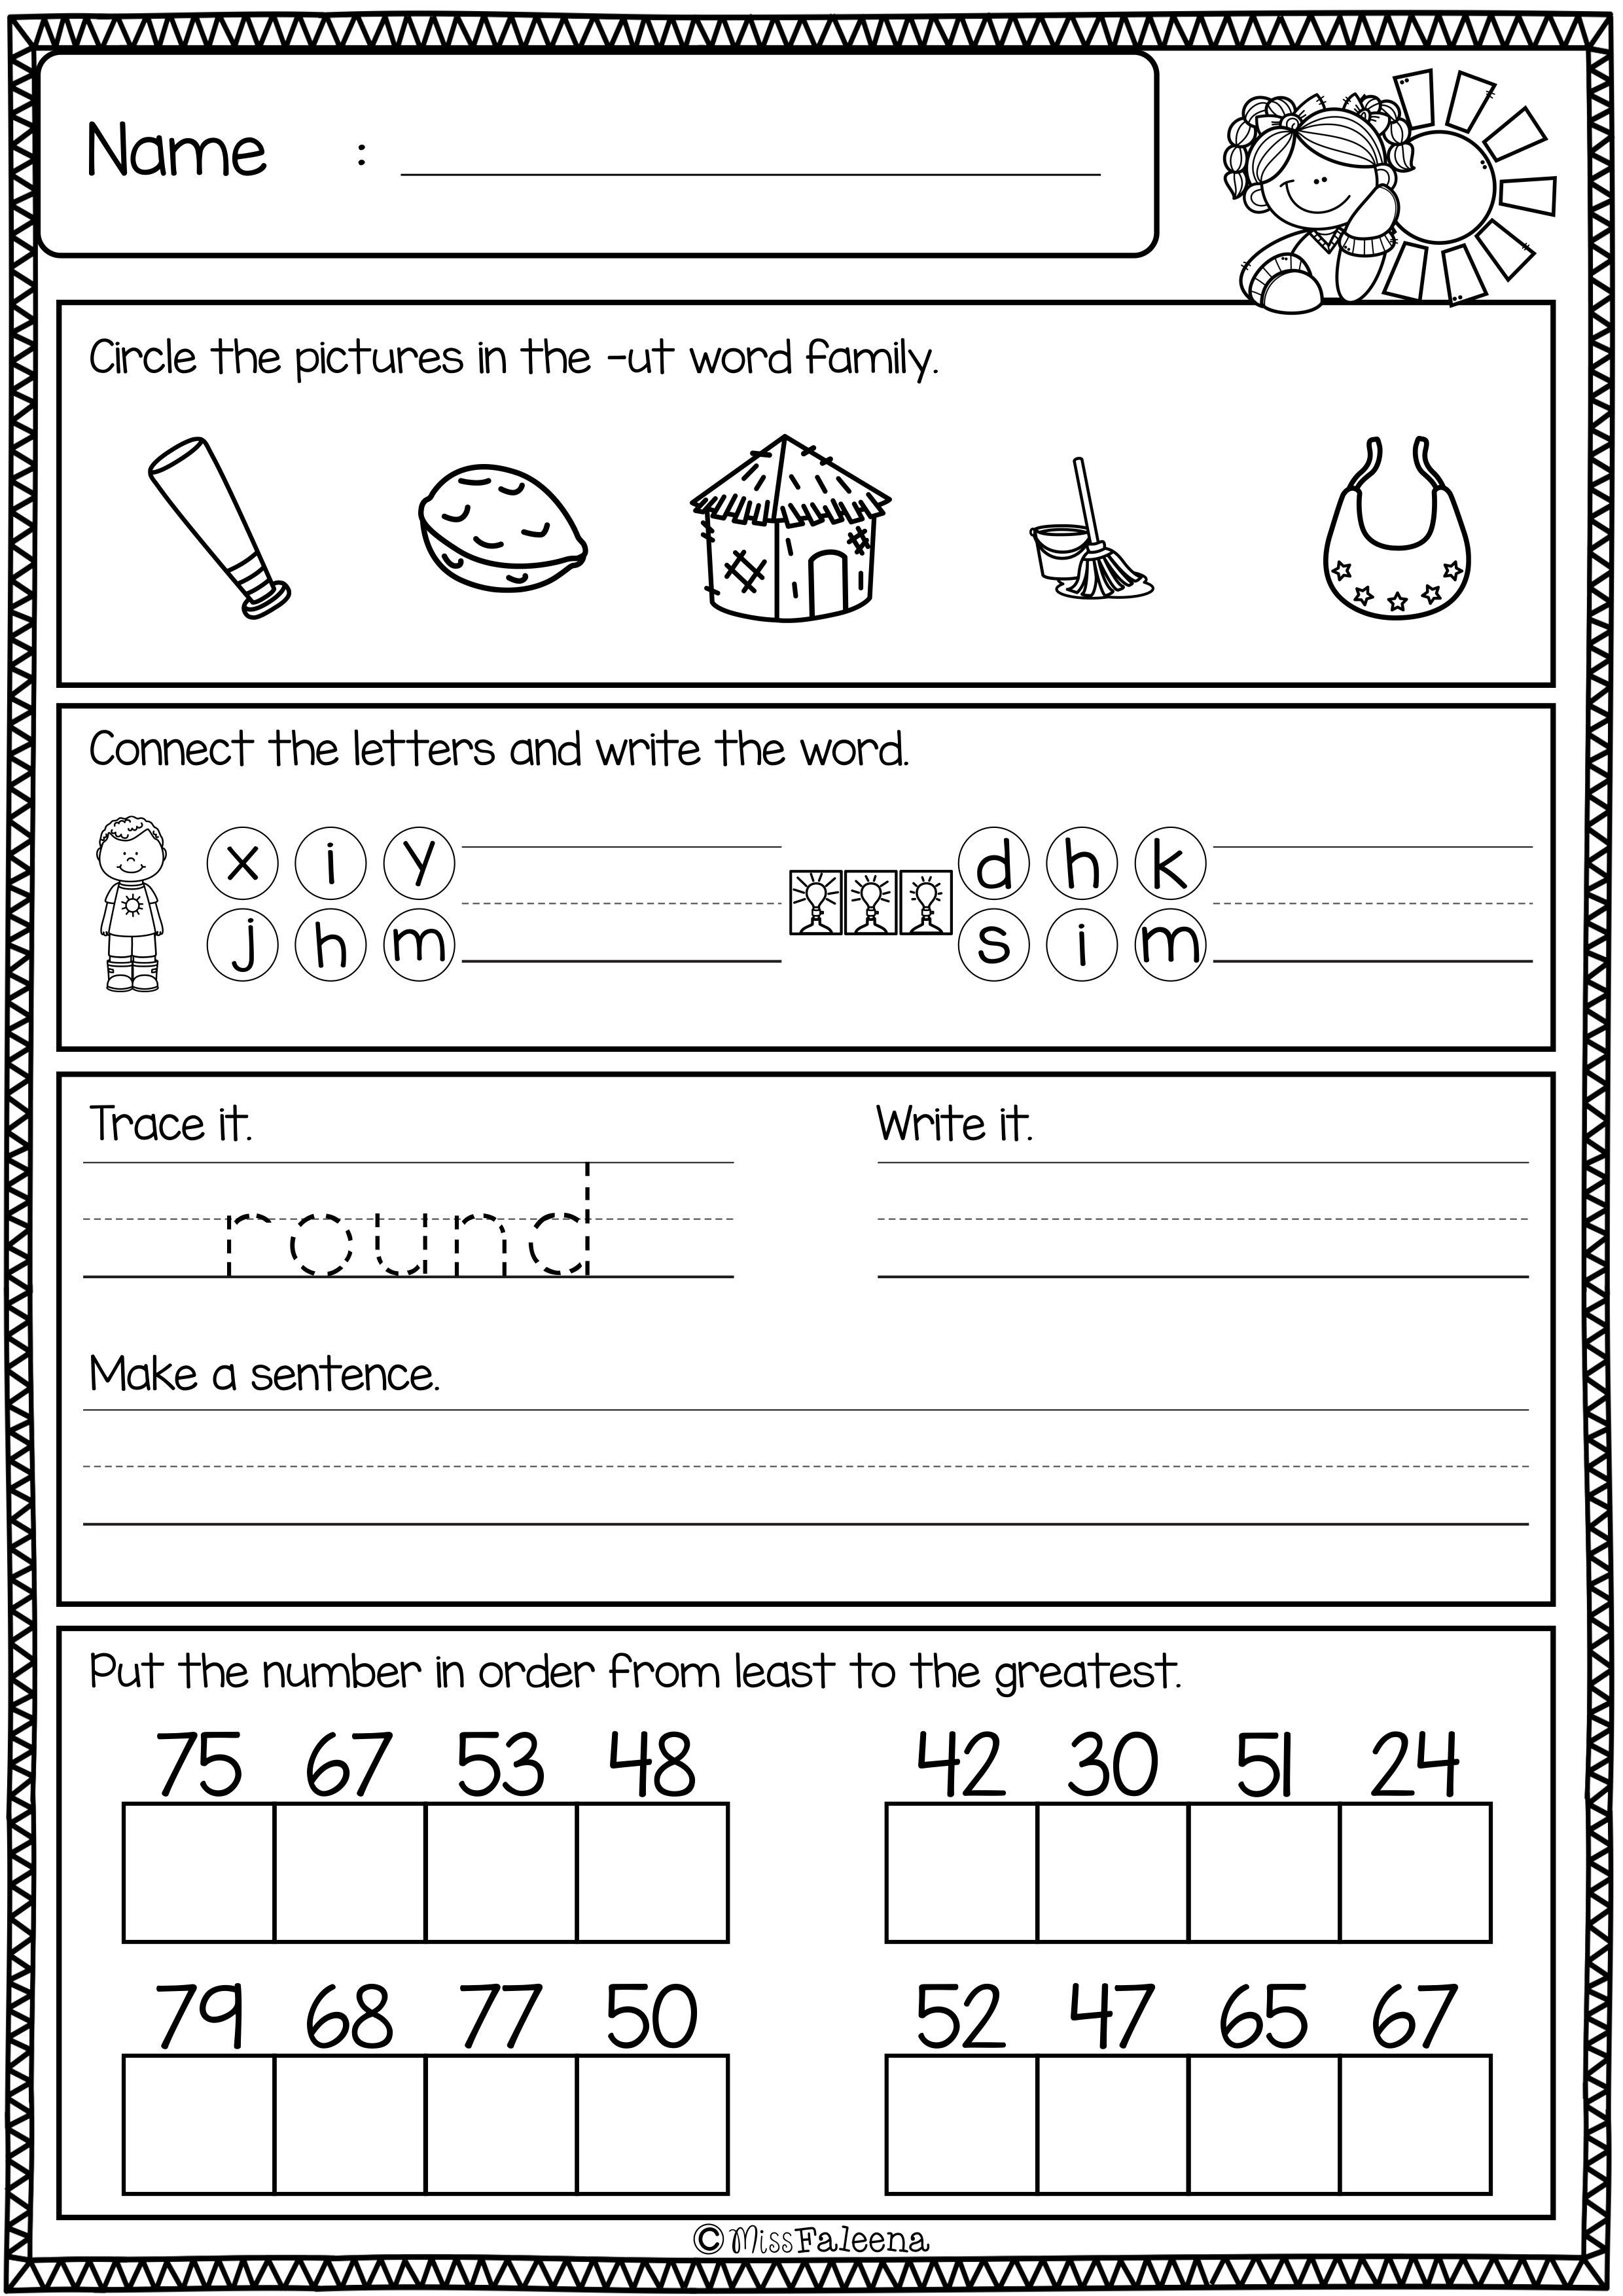 medium resolution of First Grade Morning Work (Set 2) (With images)   Kids math worksheets